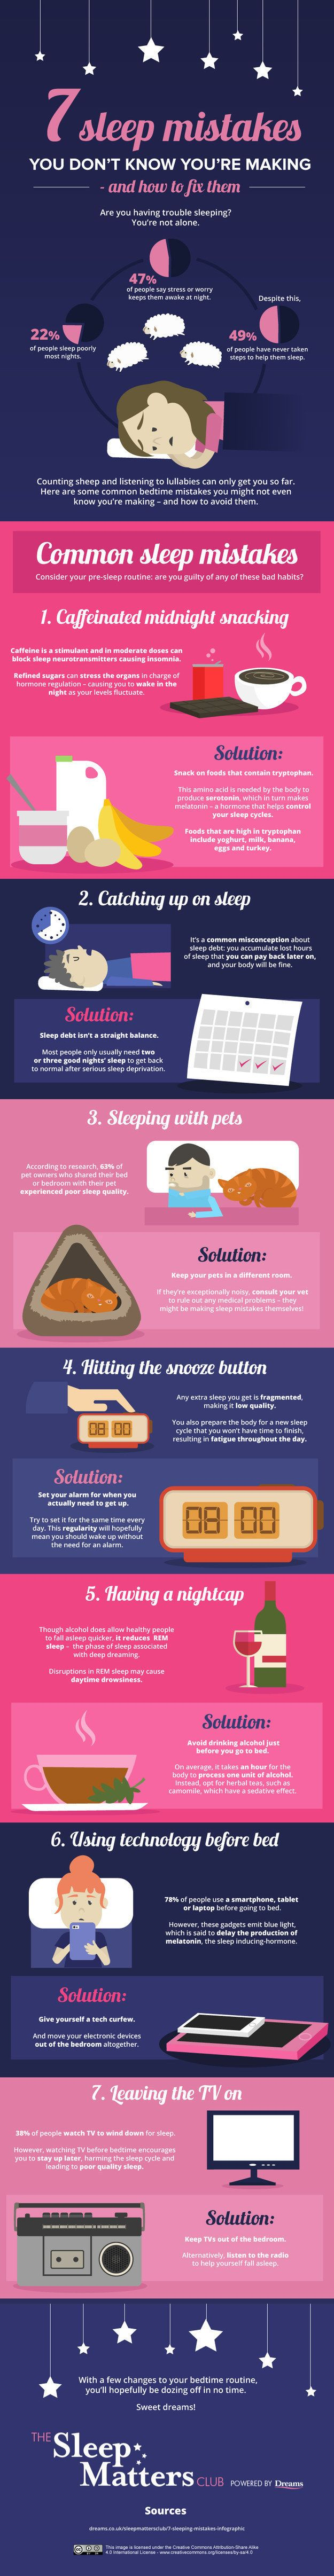 And avoid making these sleep mistakes if getting shut-eye is a problem for you.